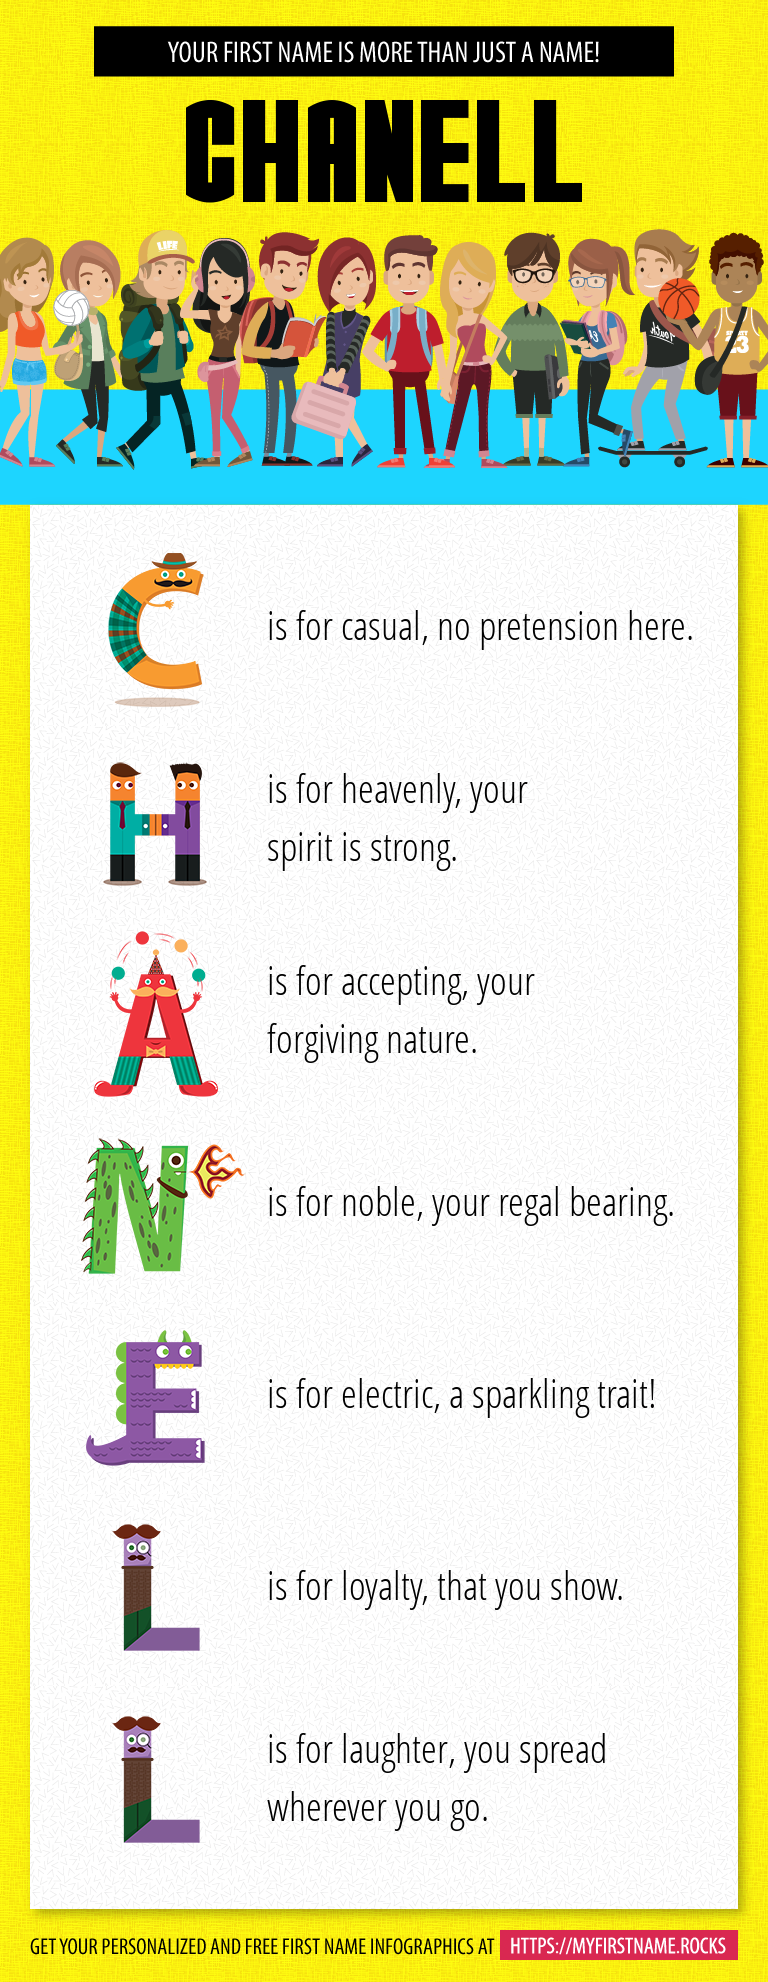 Chanell Infographics